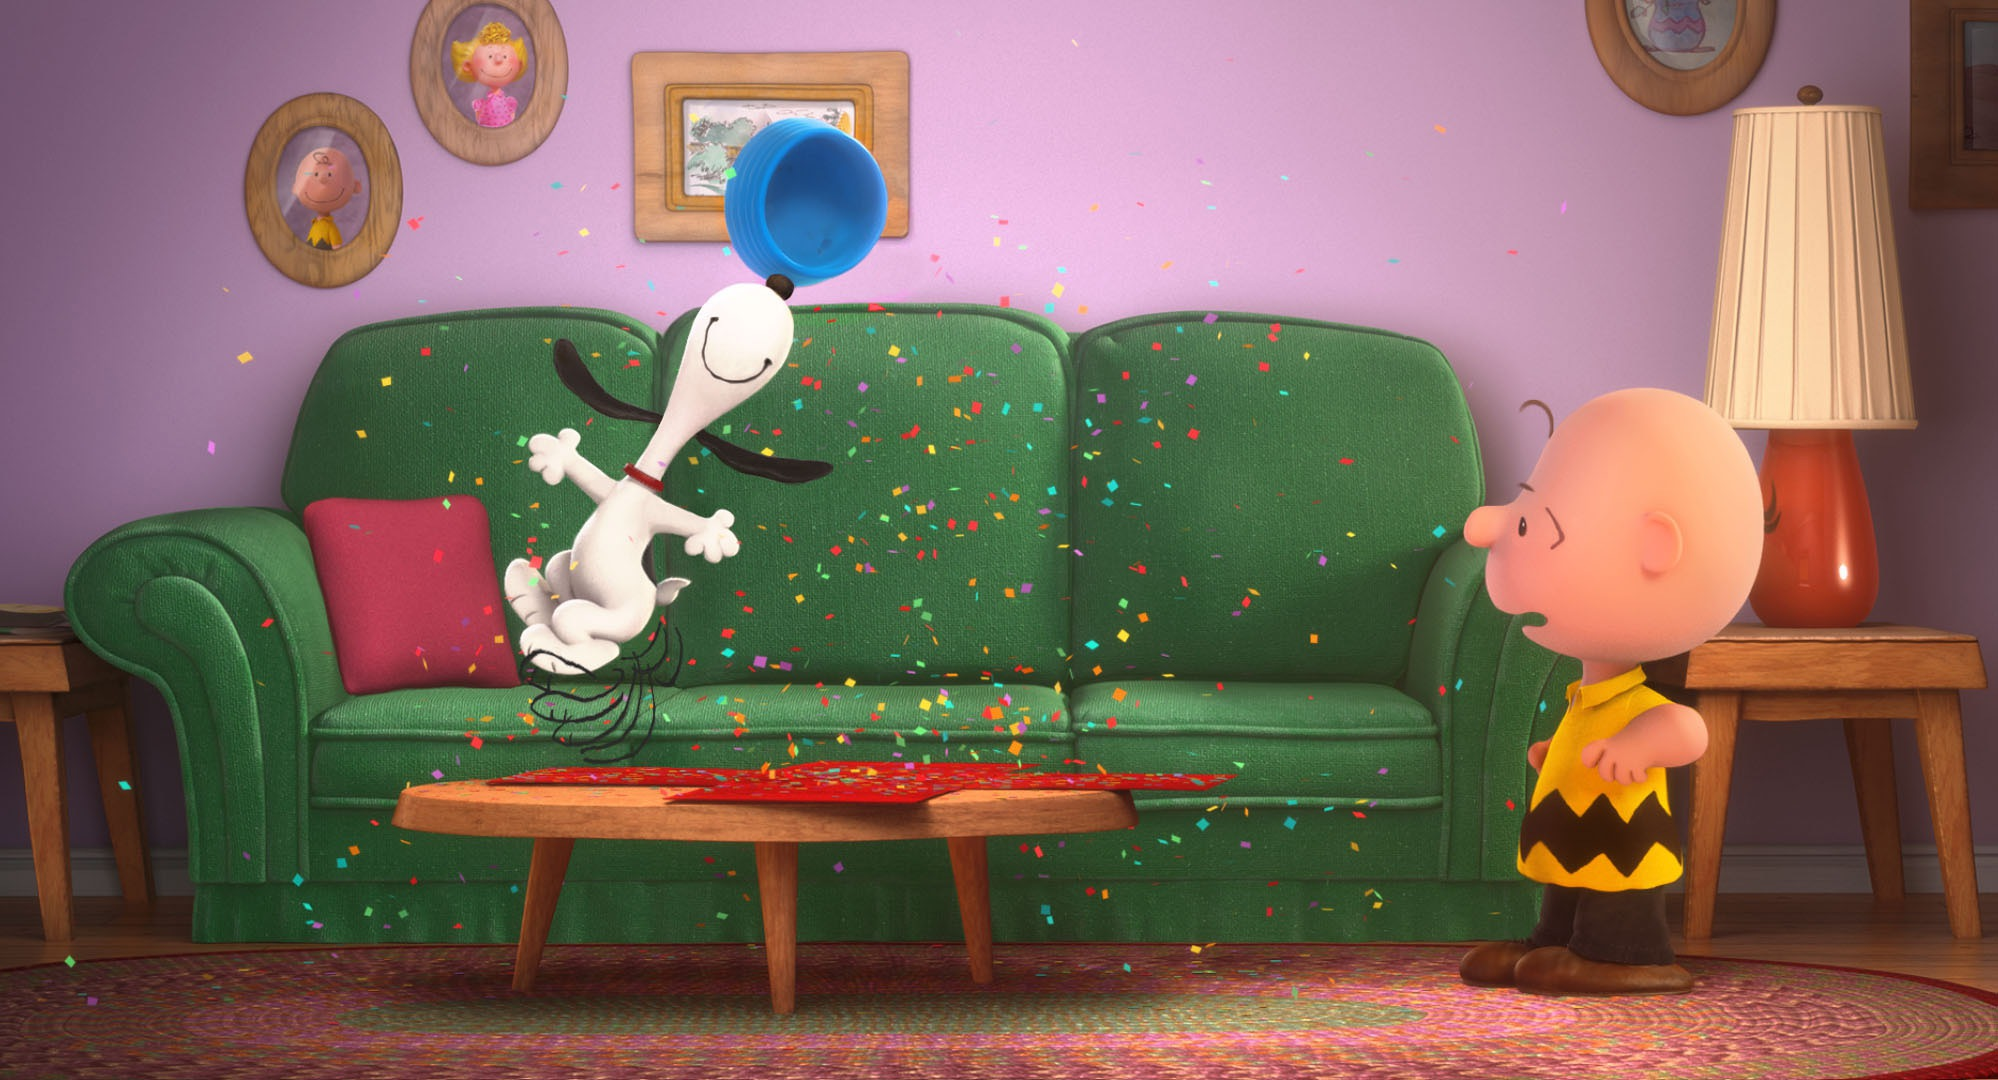 Animated Christmas Desktop Wallpaper Snoopy And Charlie Brown The Peanuts Movie Review